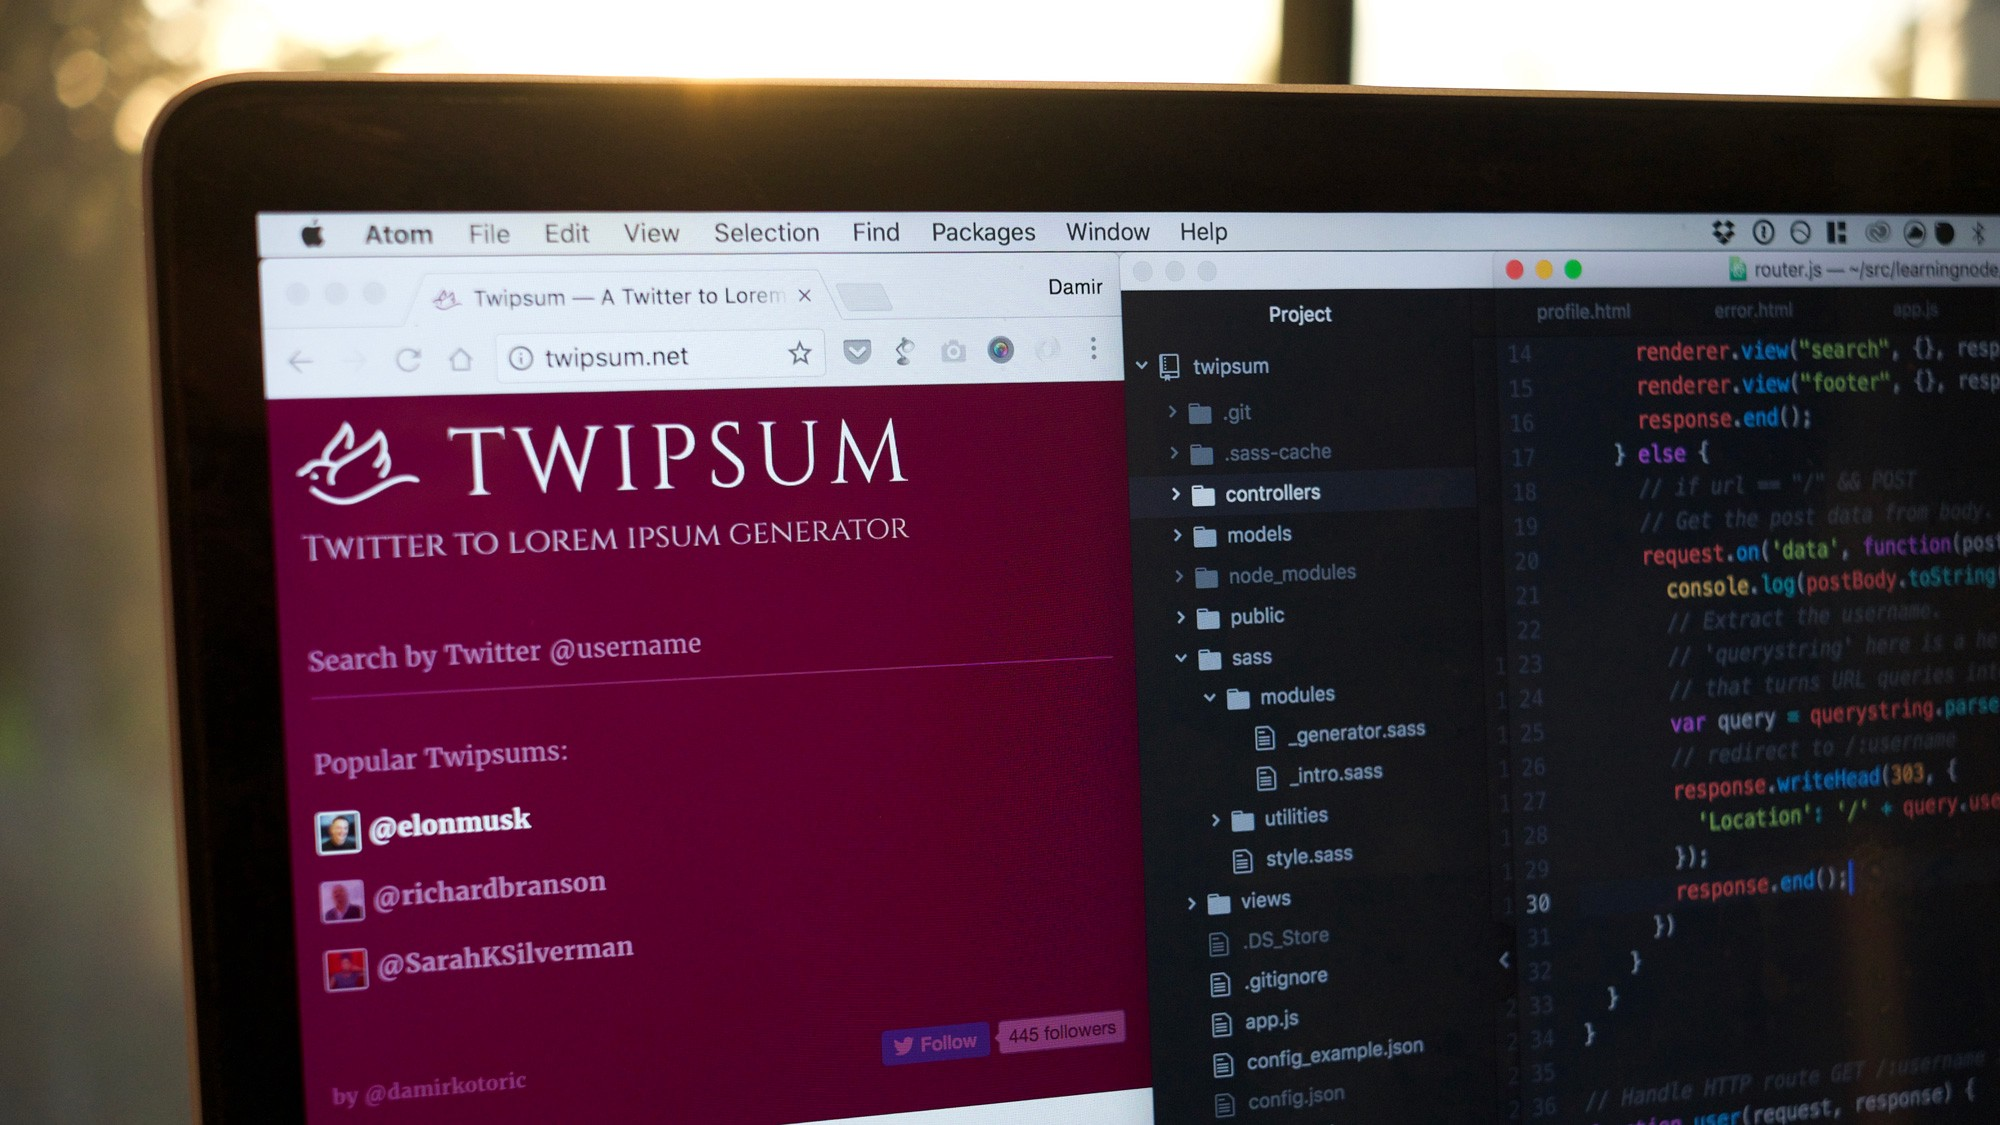 /how-i-built-twipsum-in-two-weeks-9cdbcf996443 feature image